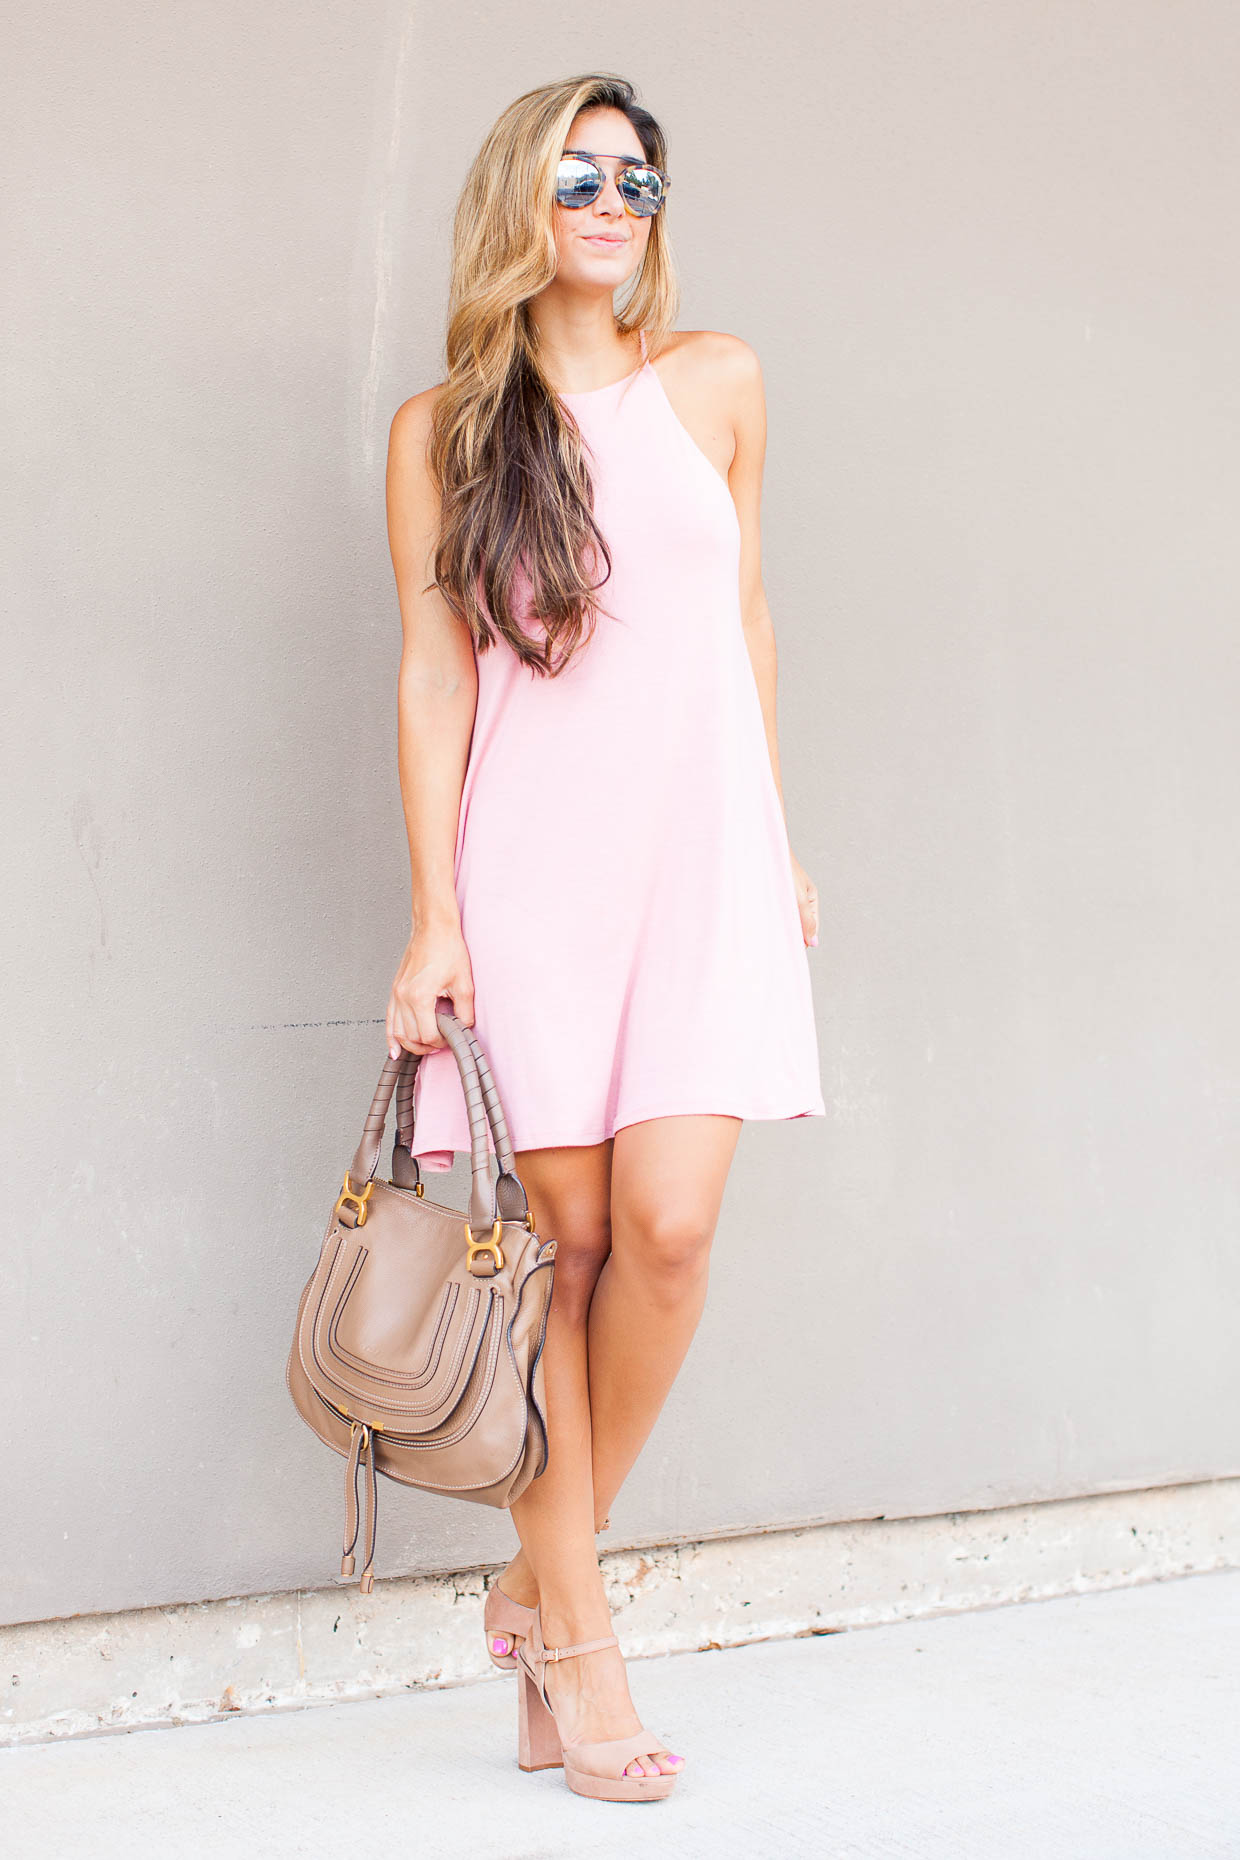 Fashion Blogger The Darling Detail is wearing a Socialite High Neck Knit Swing Dress with Vince Camuto 'Krysta' Sandals and Westward Leaning Flower 1 Sunglasses, holding a Chloe 'Medium Marcie' Leather Satchel.